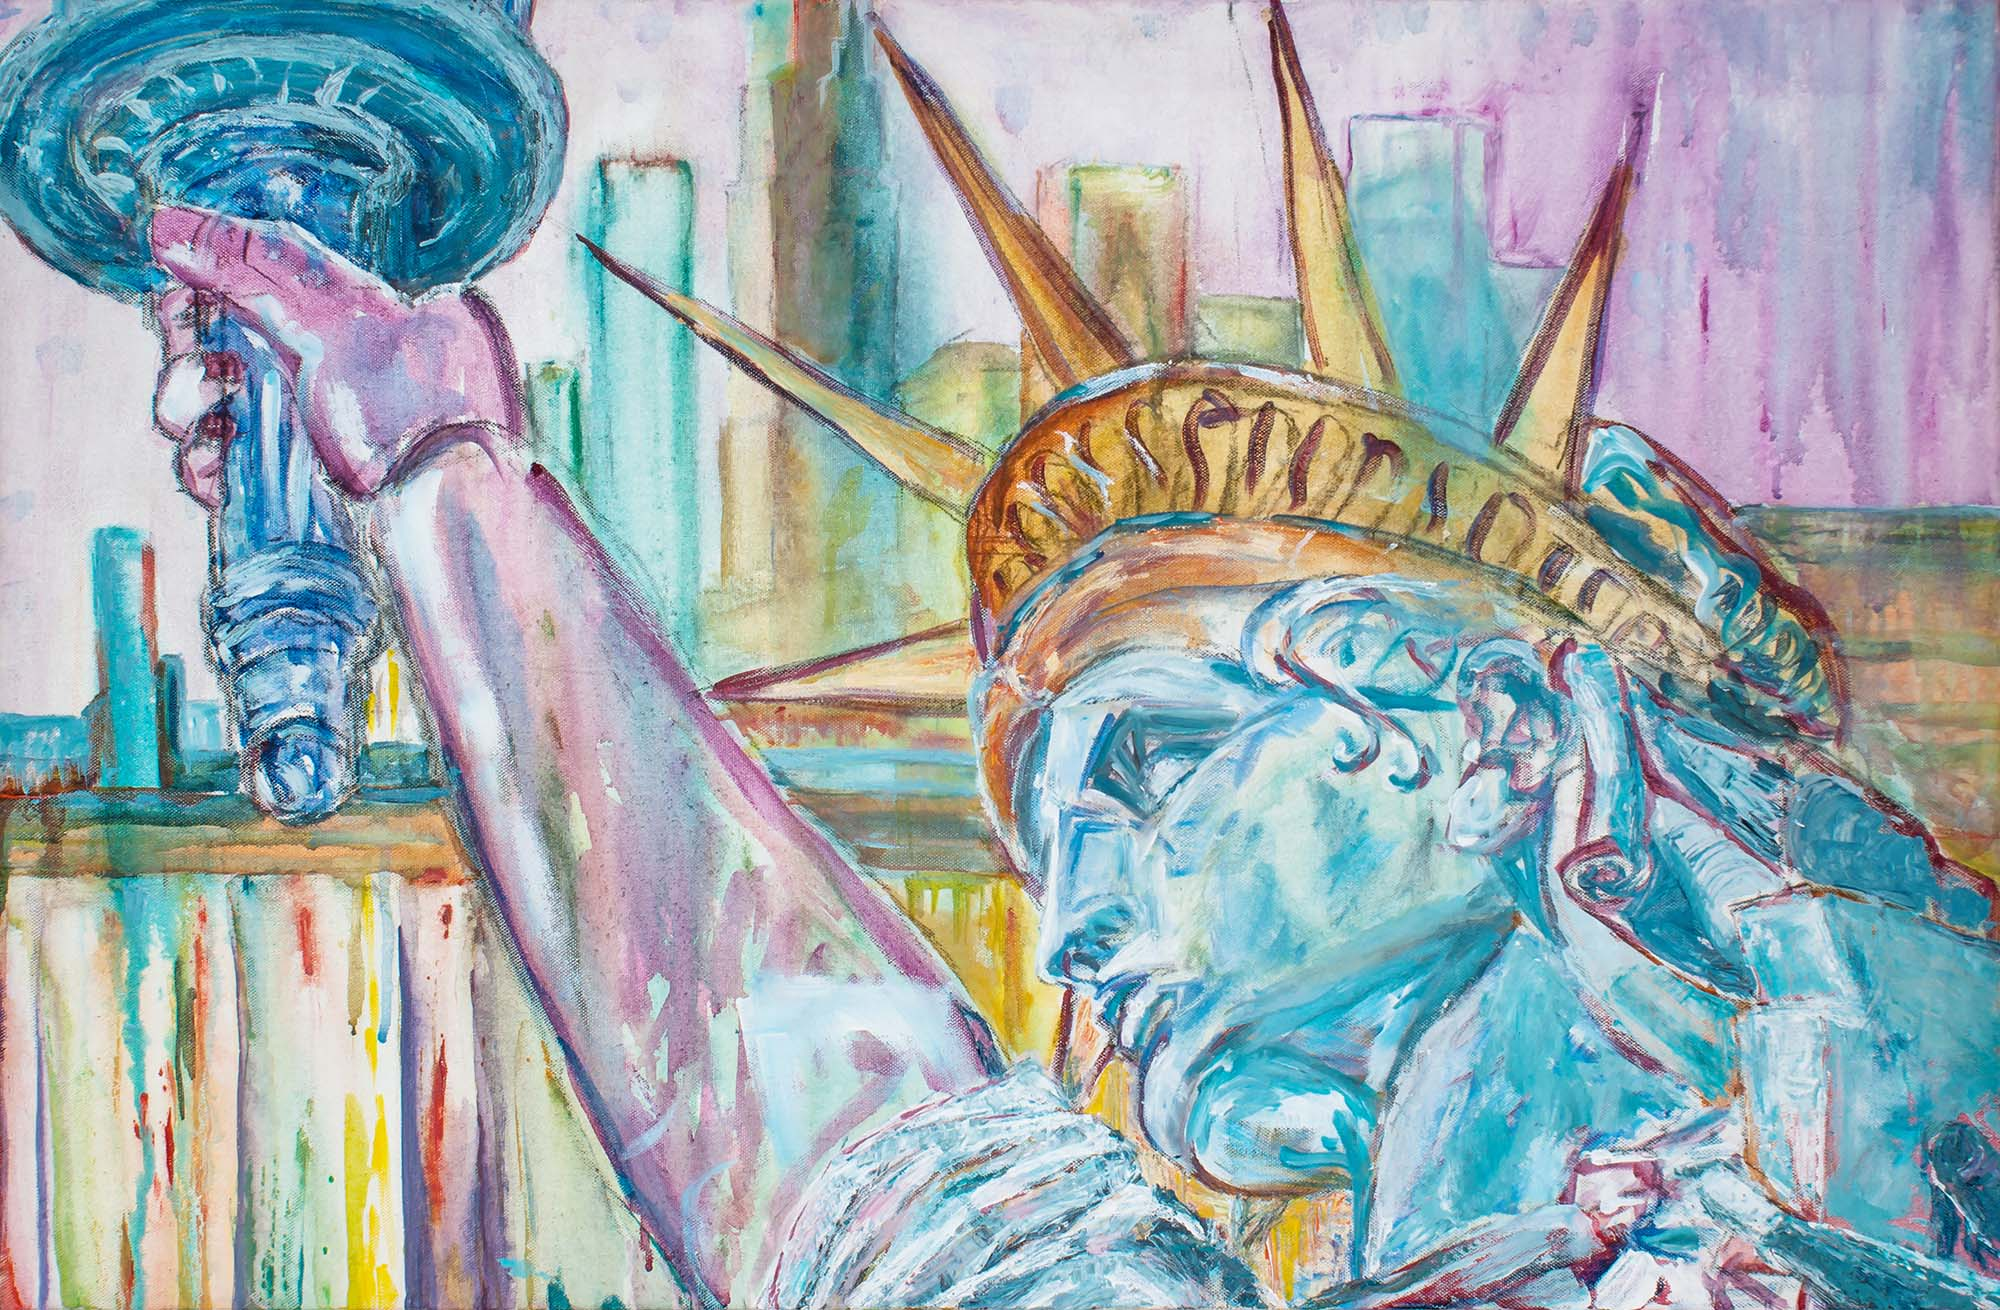 Statue of liberty head and flame with cityscape by Ria Kieboom